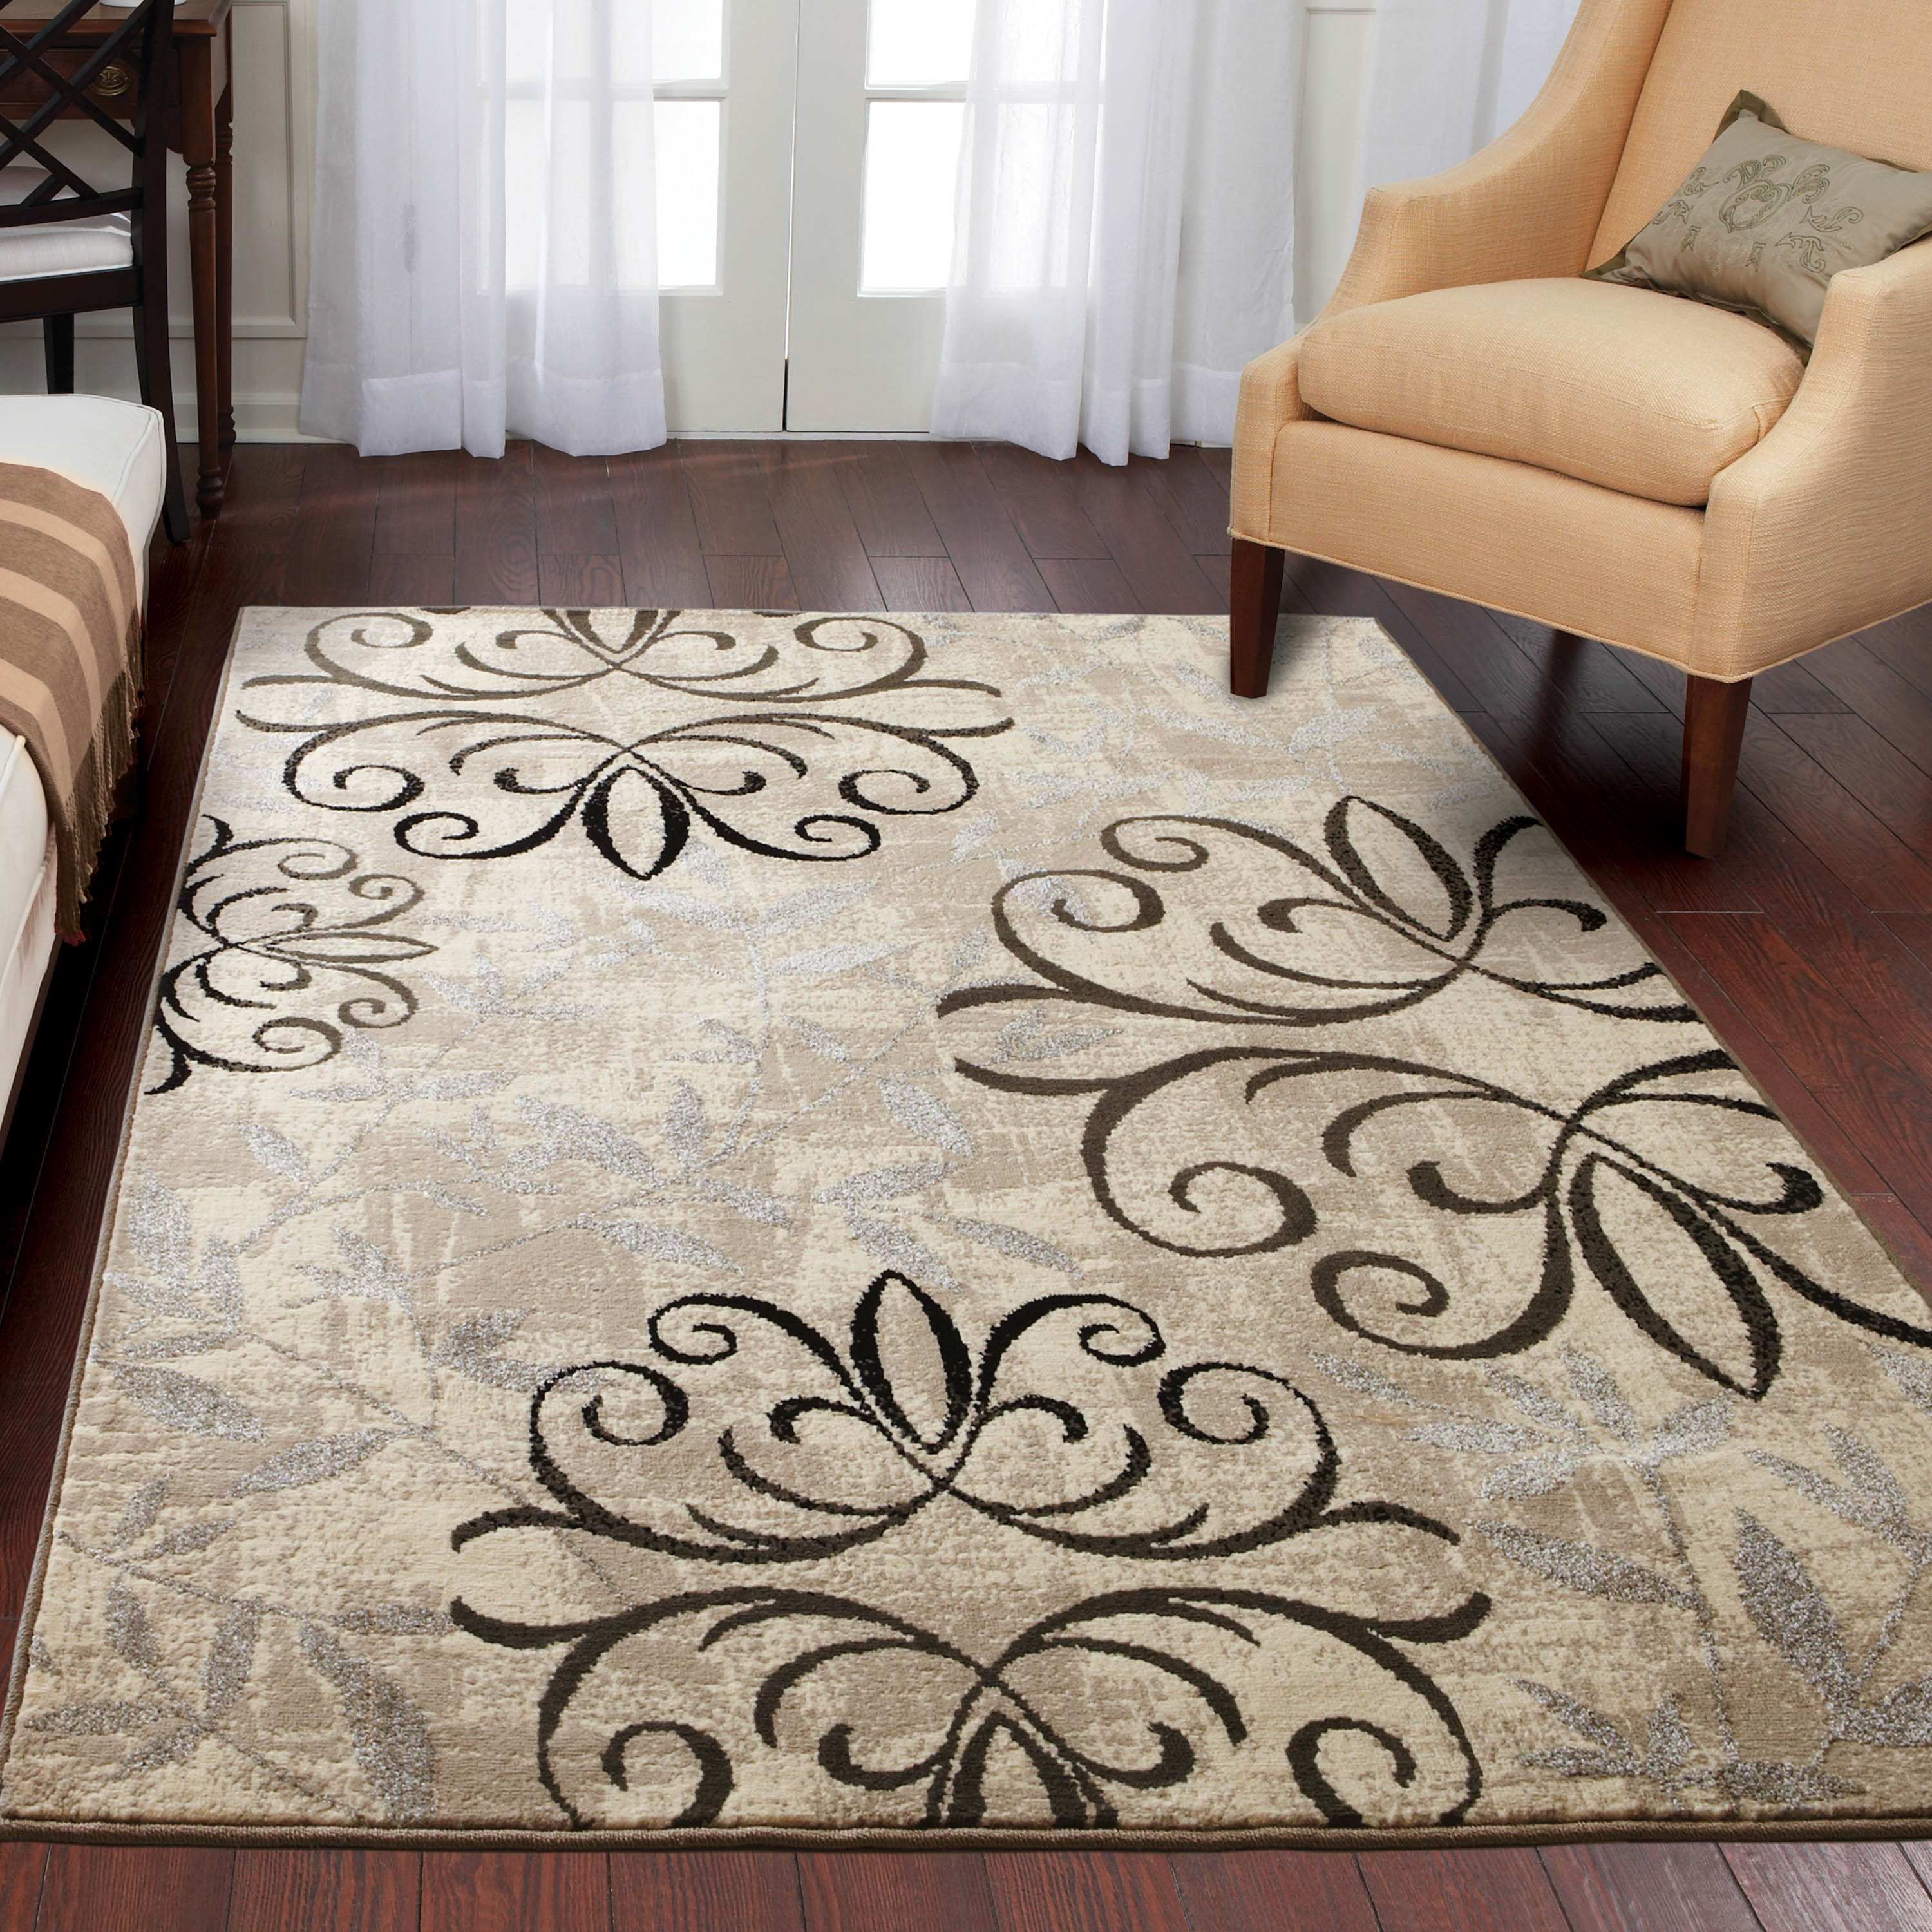 How to choose an area rug?